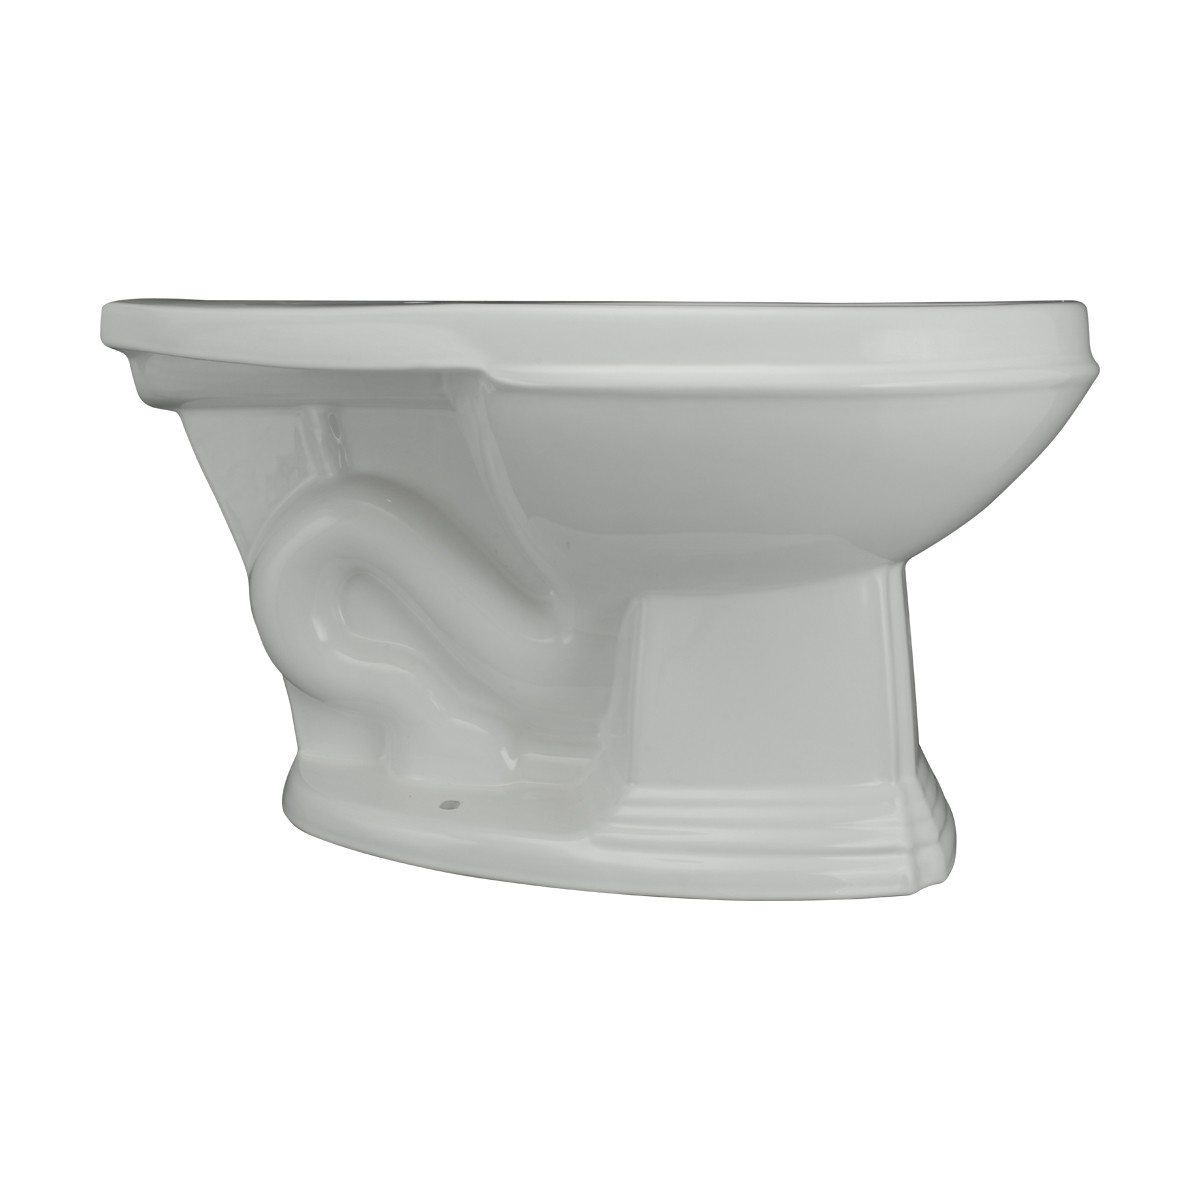 Mahogany High Tank Pull Chain Toilet with Satin LPipe and Elongated Bowl Satin High Tank Pull Chain Toilets High Tank Toilet with Elongated Bowl Old Fashioned Toilet